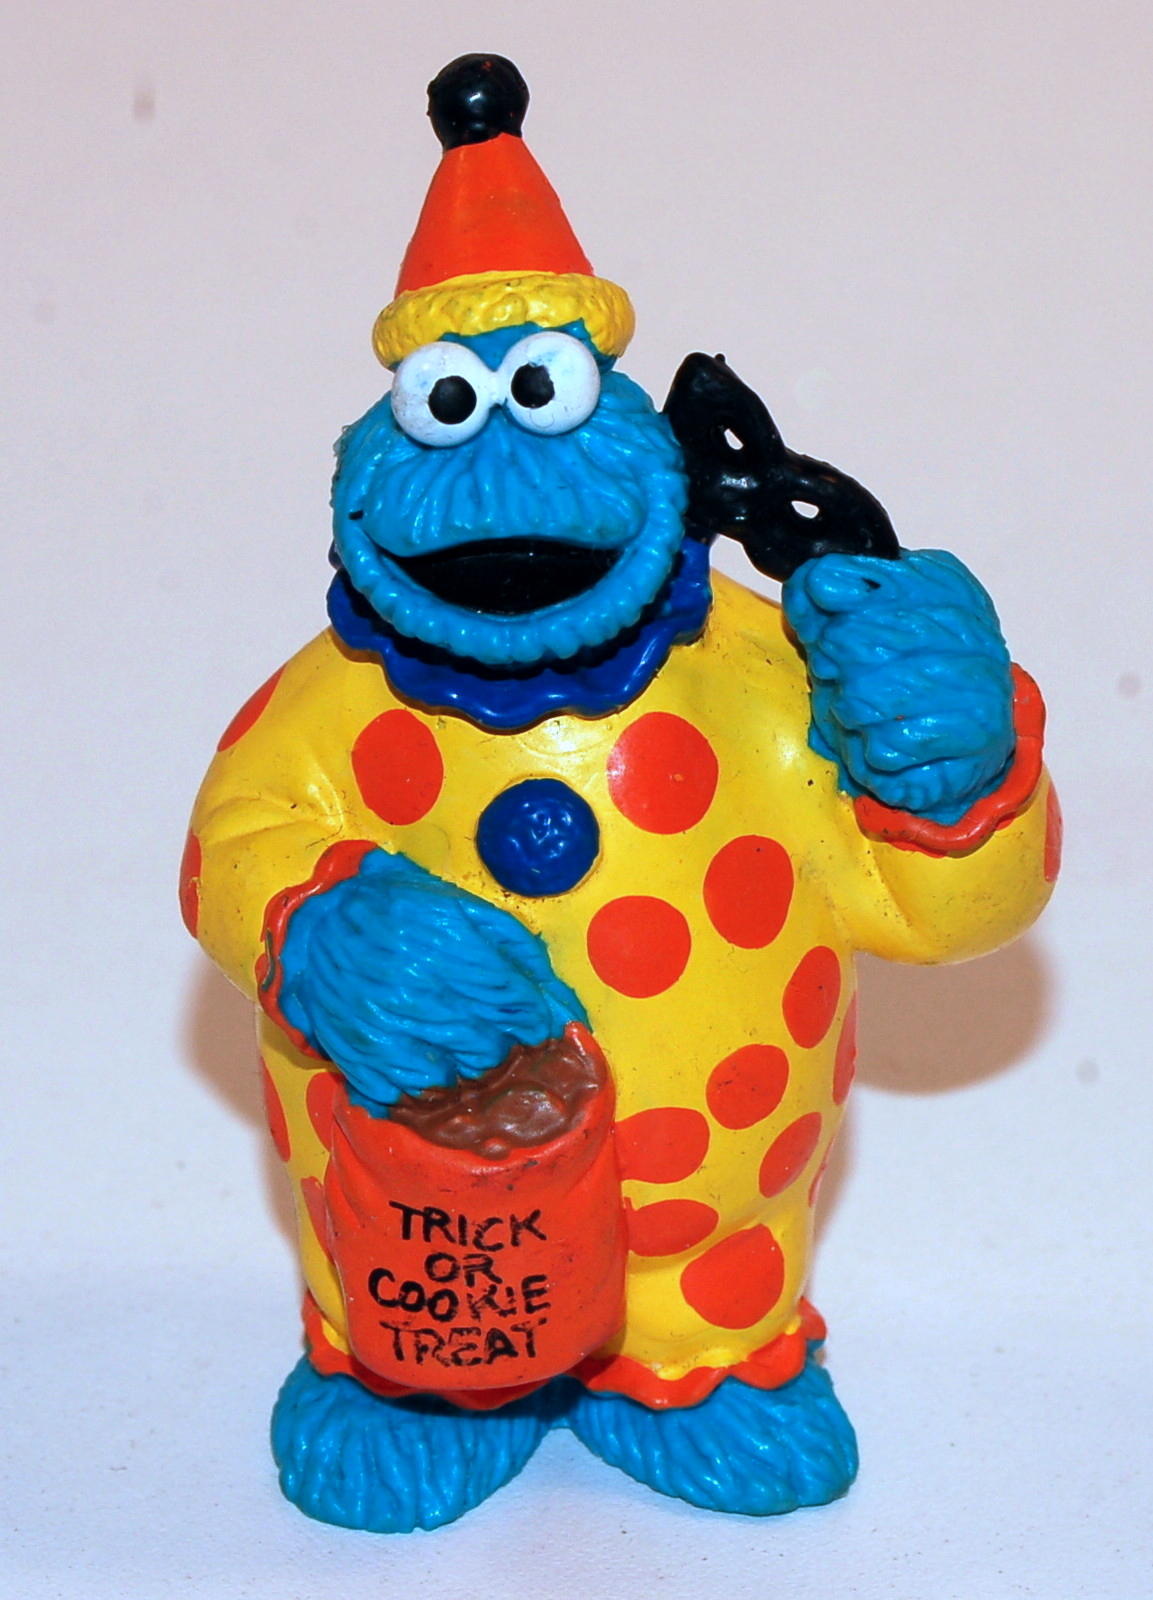 File:ApplauseCookieTrickorTreat.jpg